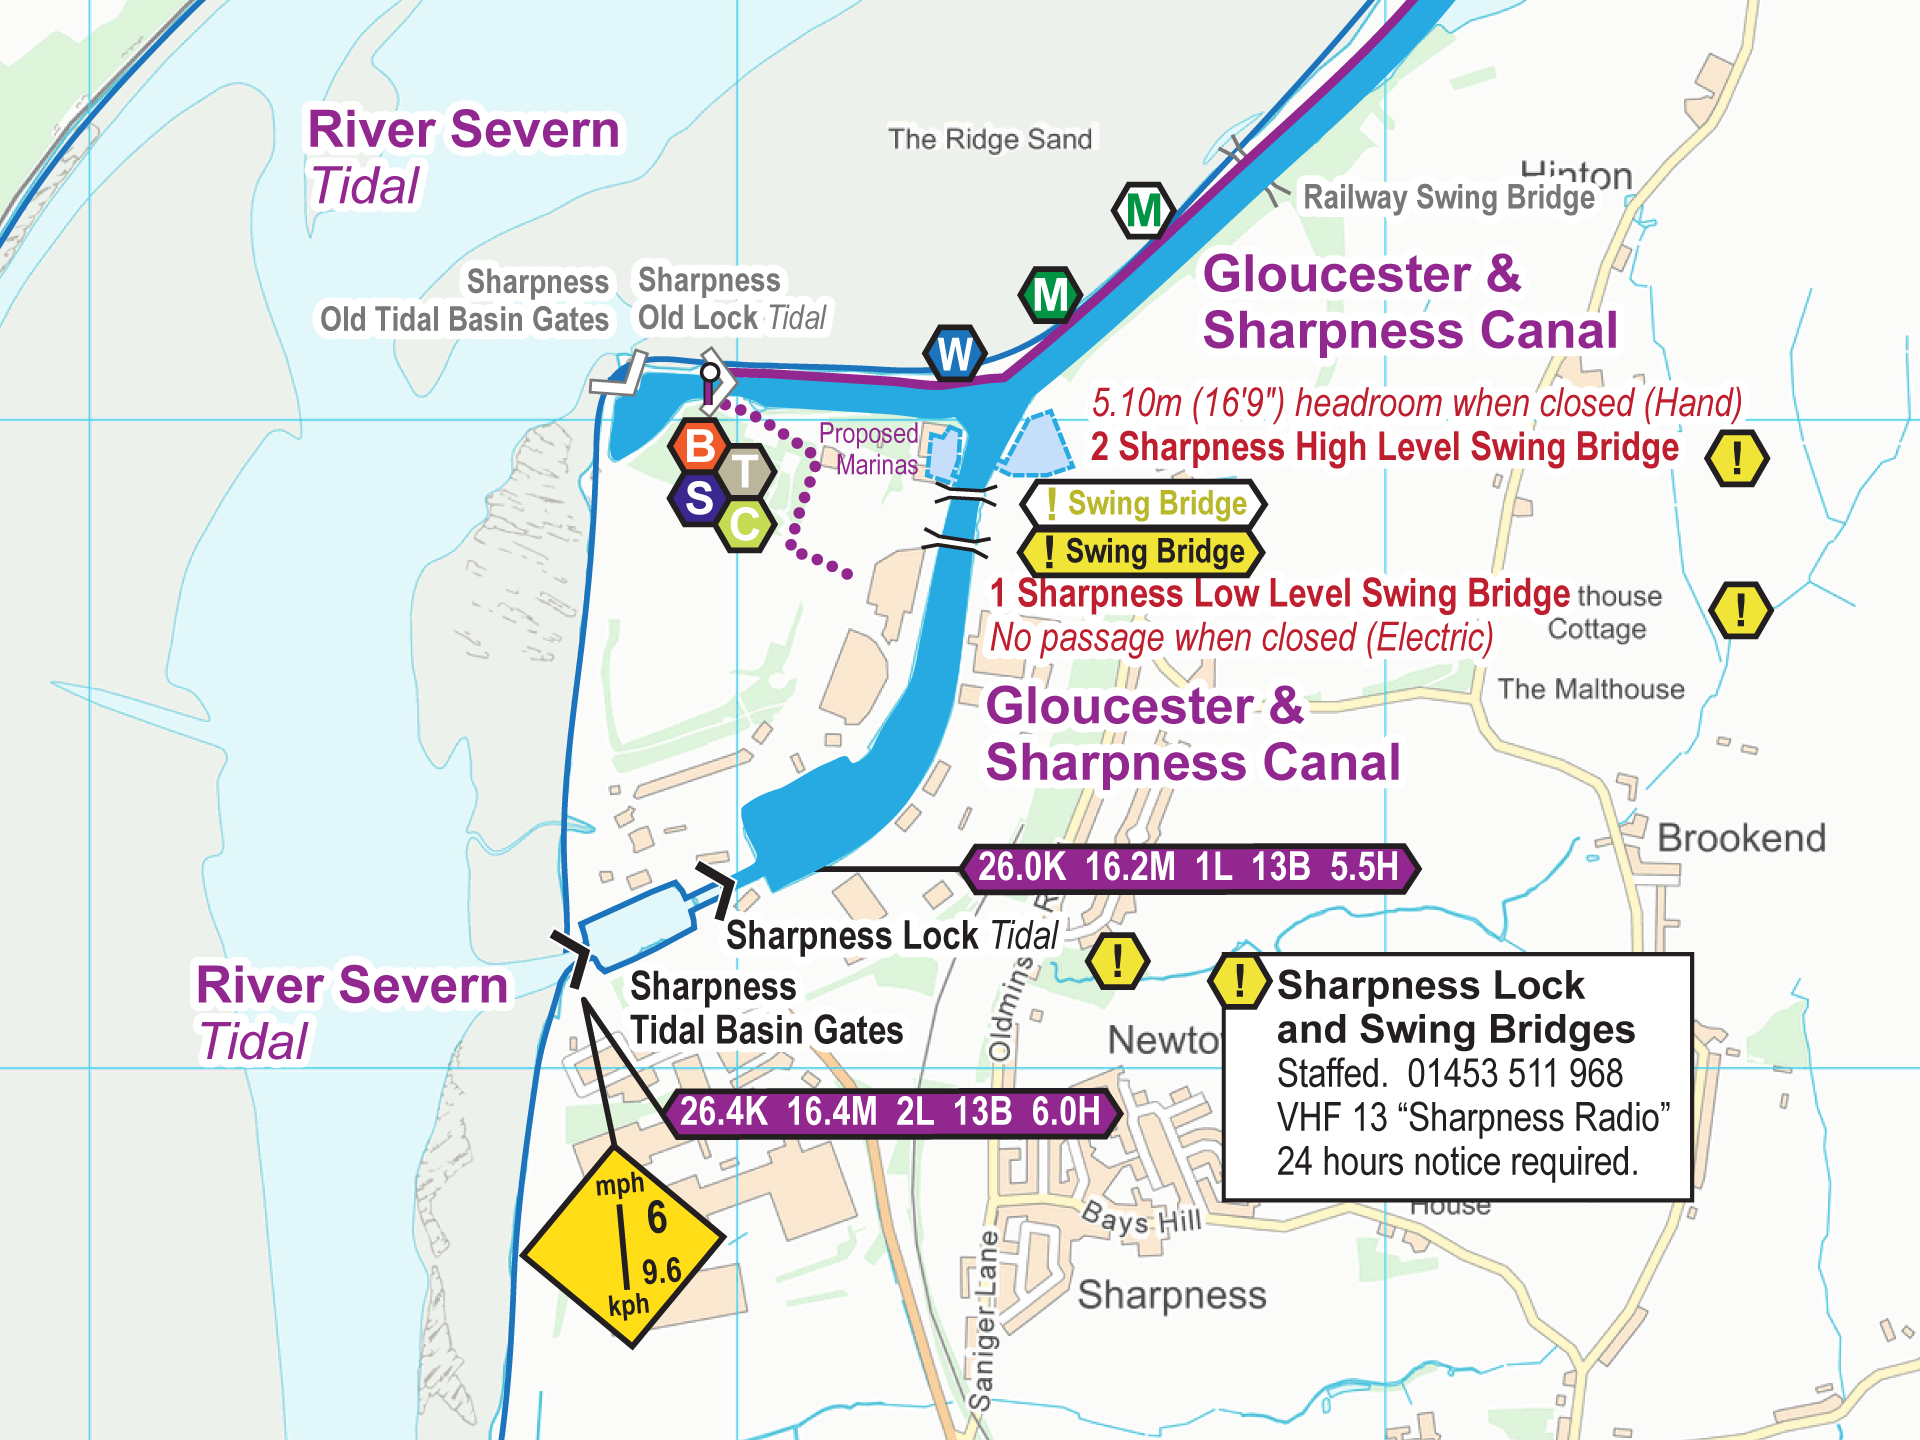 Map Of Uk Gloucester.River Severn And Gloucester Sharpness Canal Maps Waterway Routes